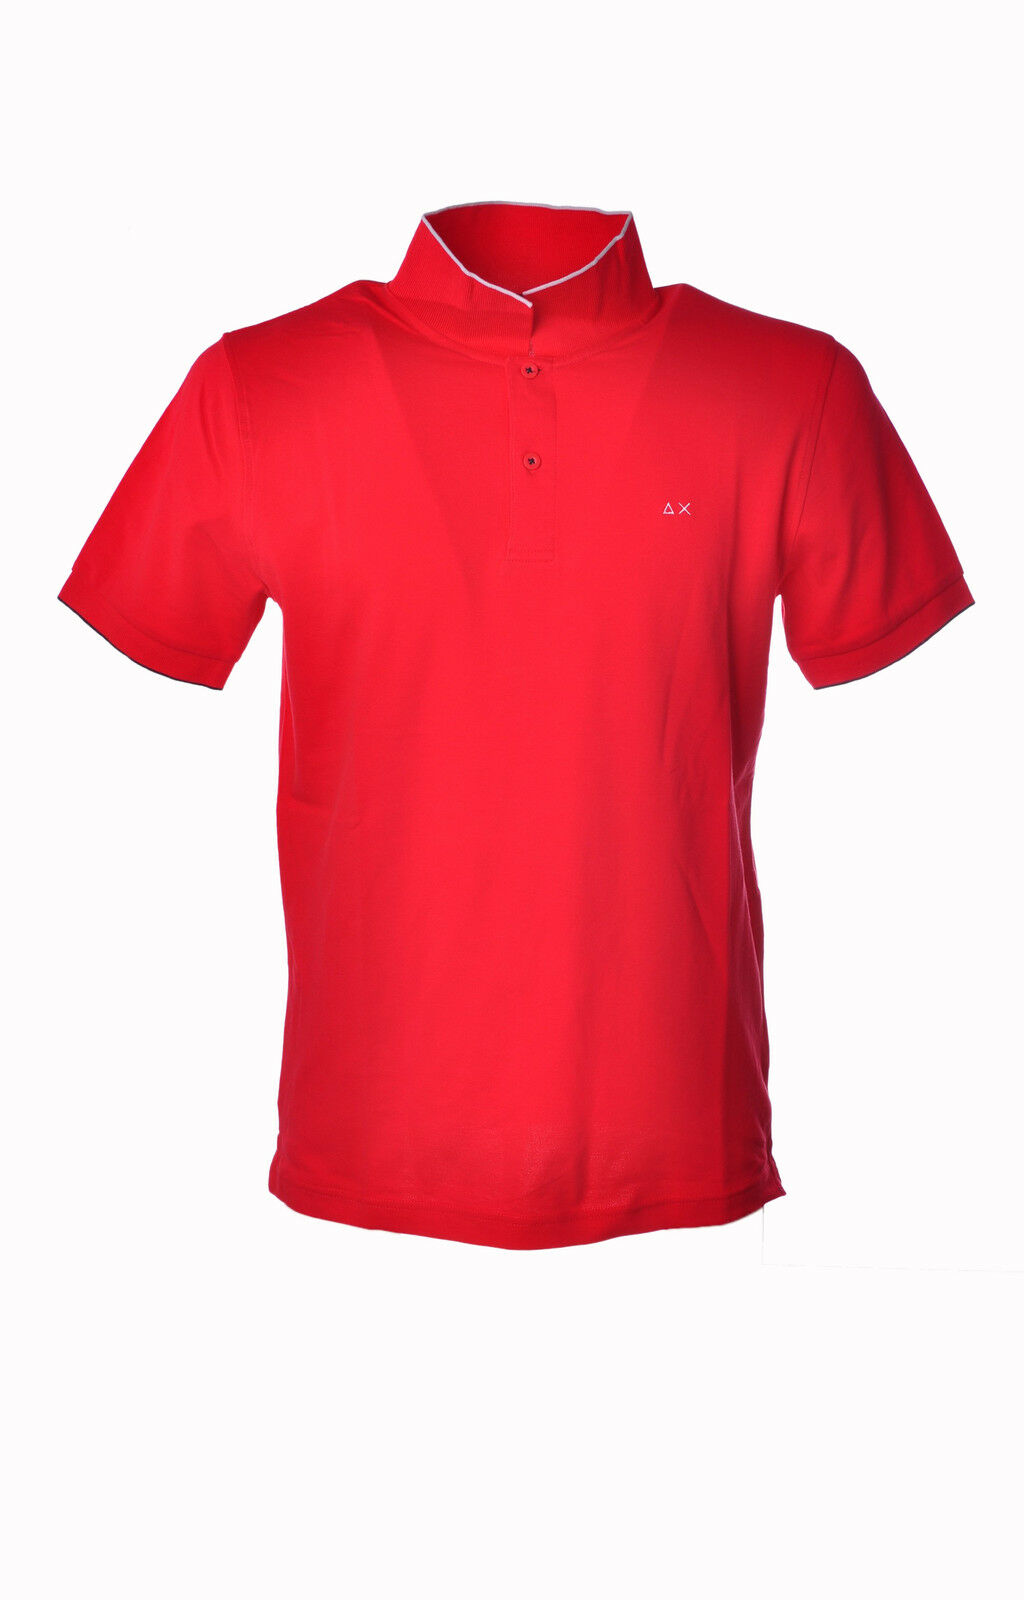 Sun 68 - Topwear-Polo - Man - Red - 3207910H184455